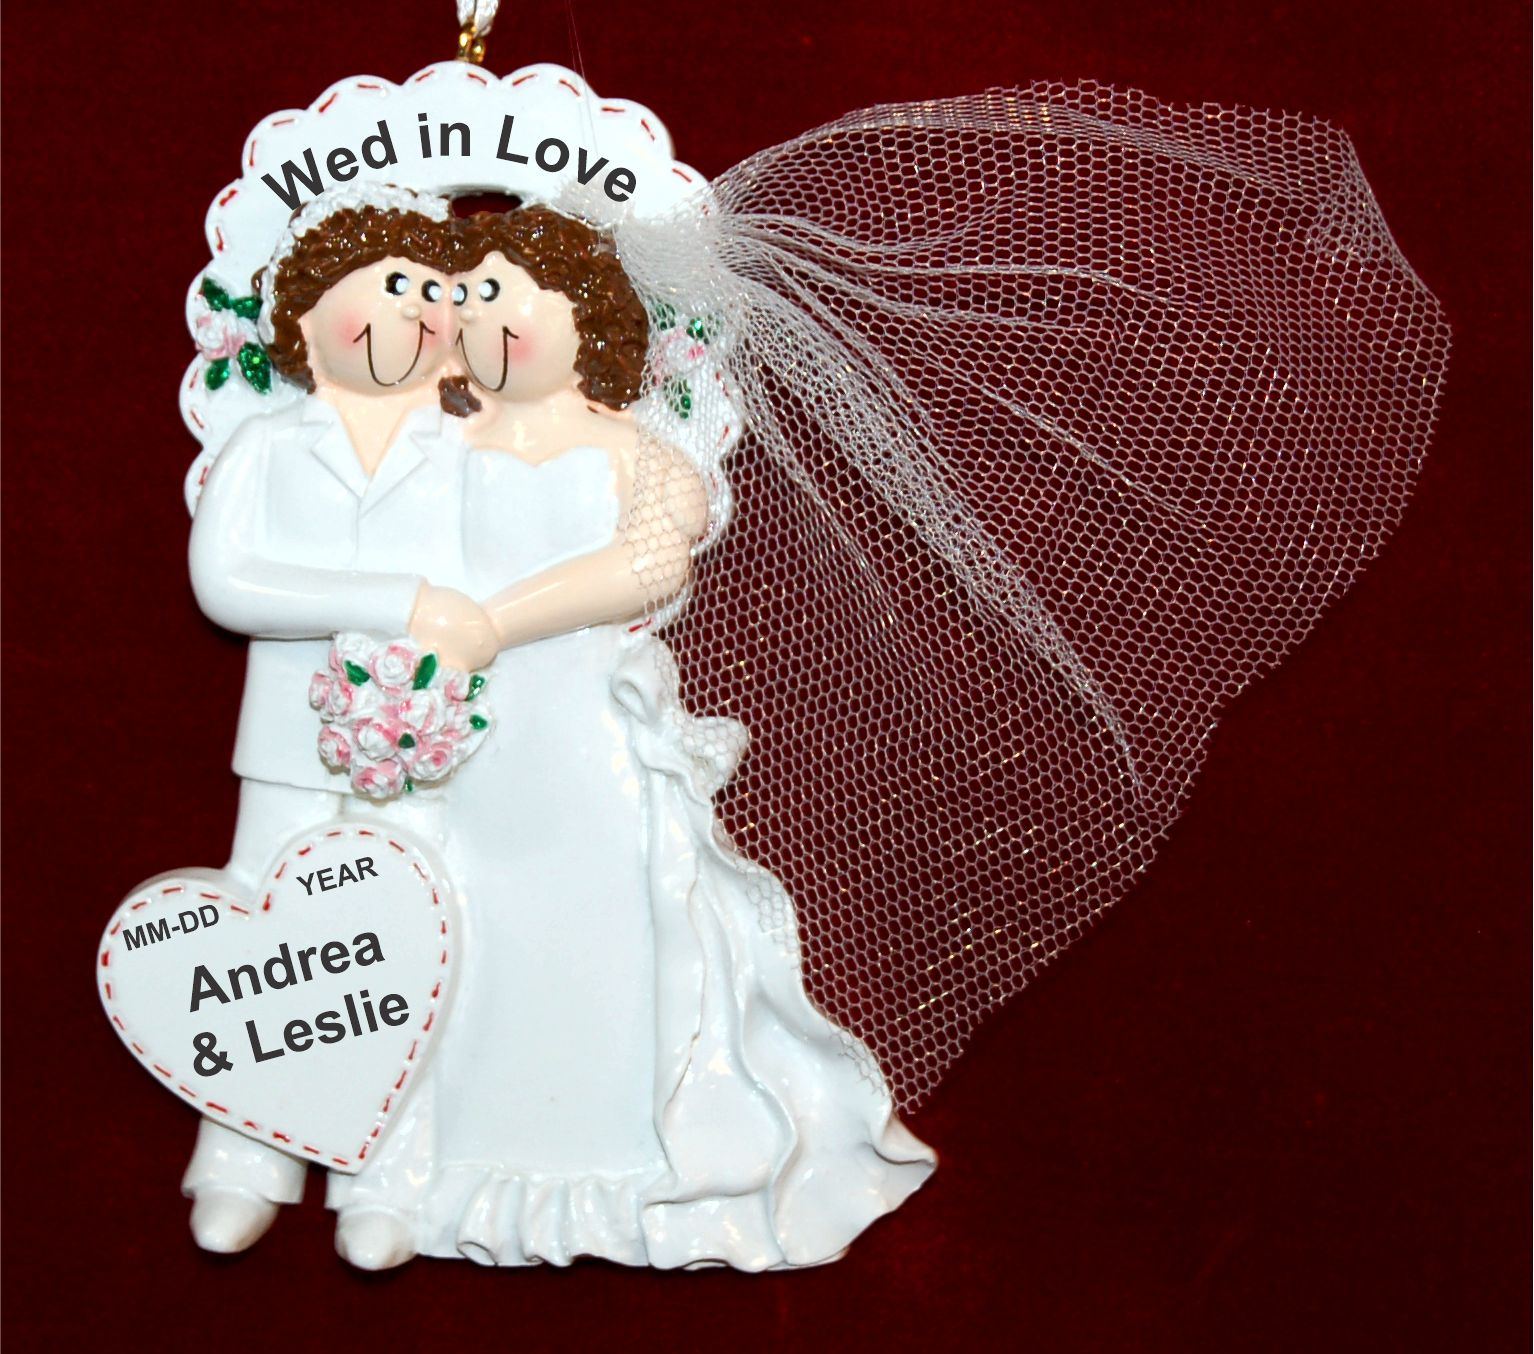 Lesbian Wedding Christmas Ornament Personalized FREE by Russell Rhodes